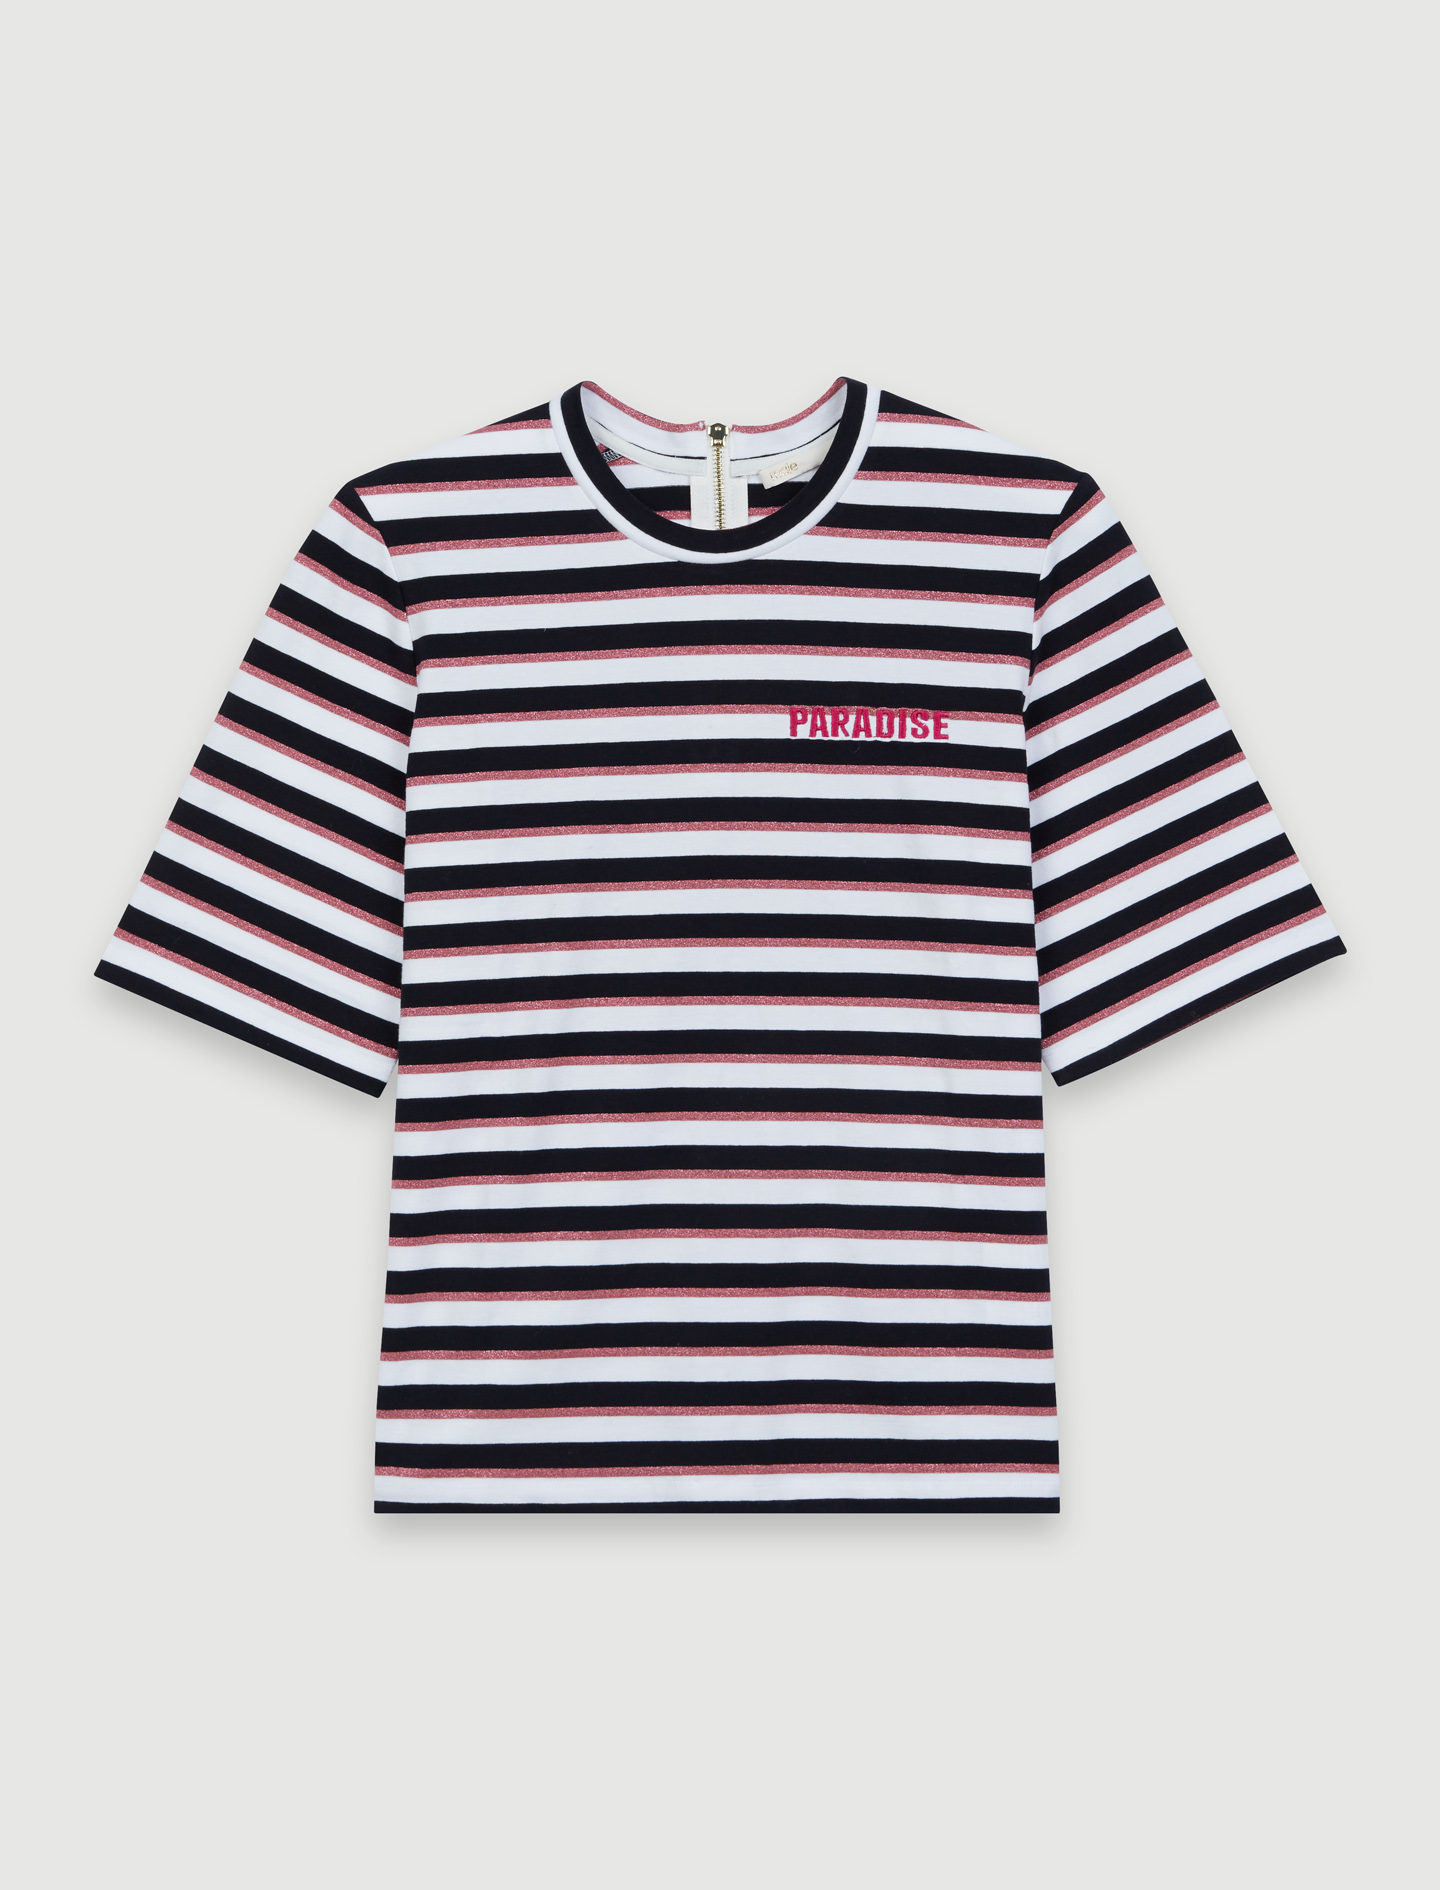 T-shirt with tricoloured stripes - Multi-colour